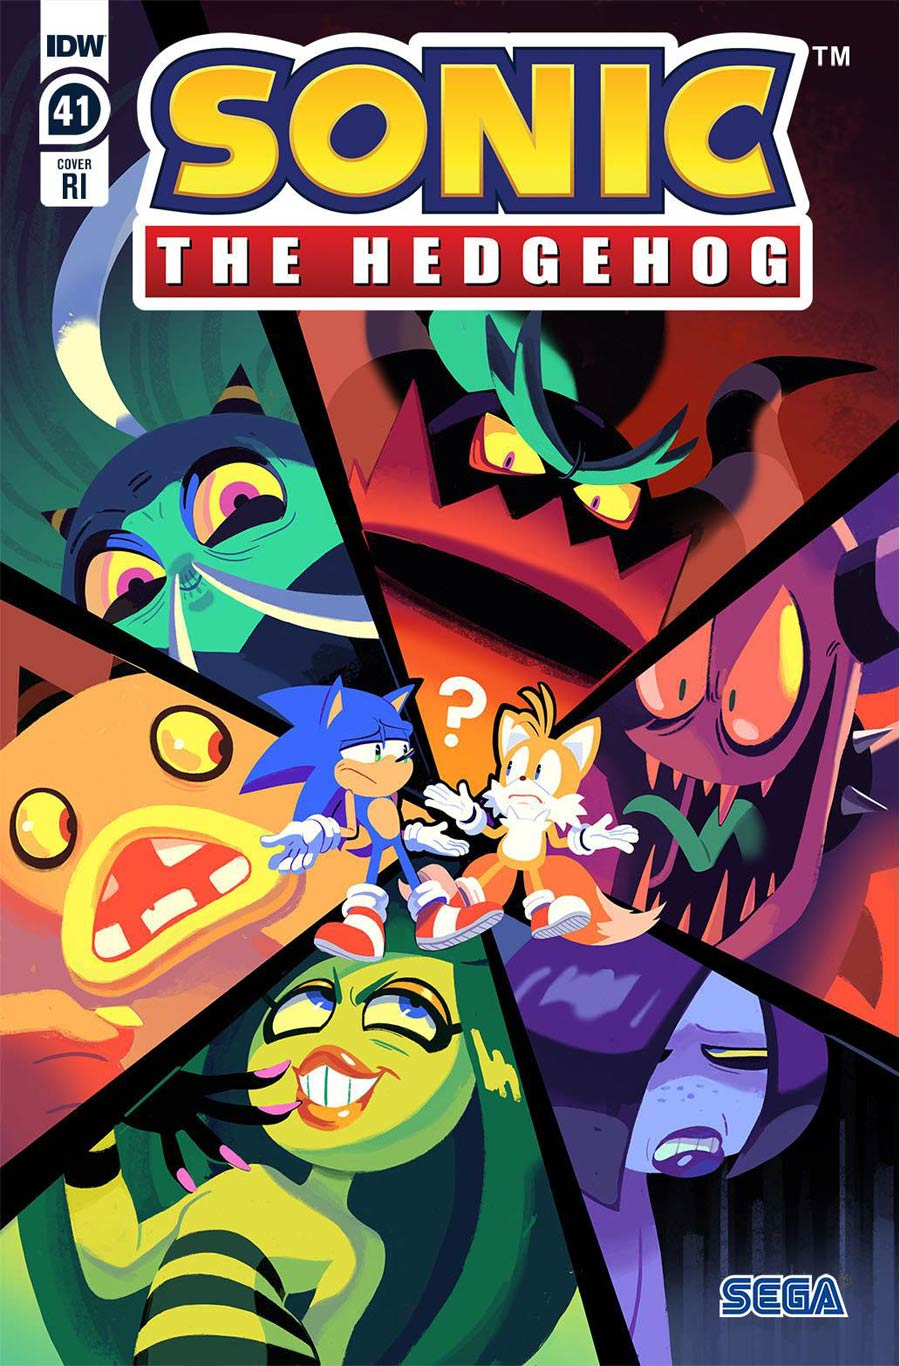 Sonic The Hedgehog Vol 3 #41 Cover C Incentive Nathalie Fourdraine Variant Cover